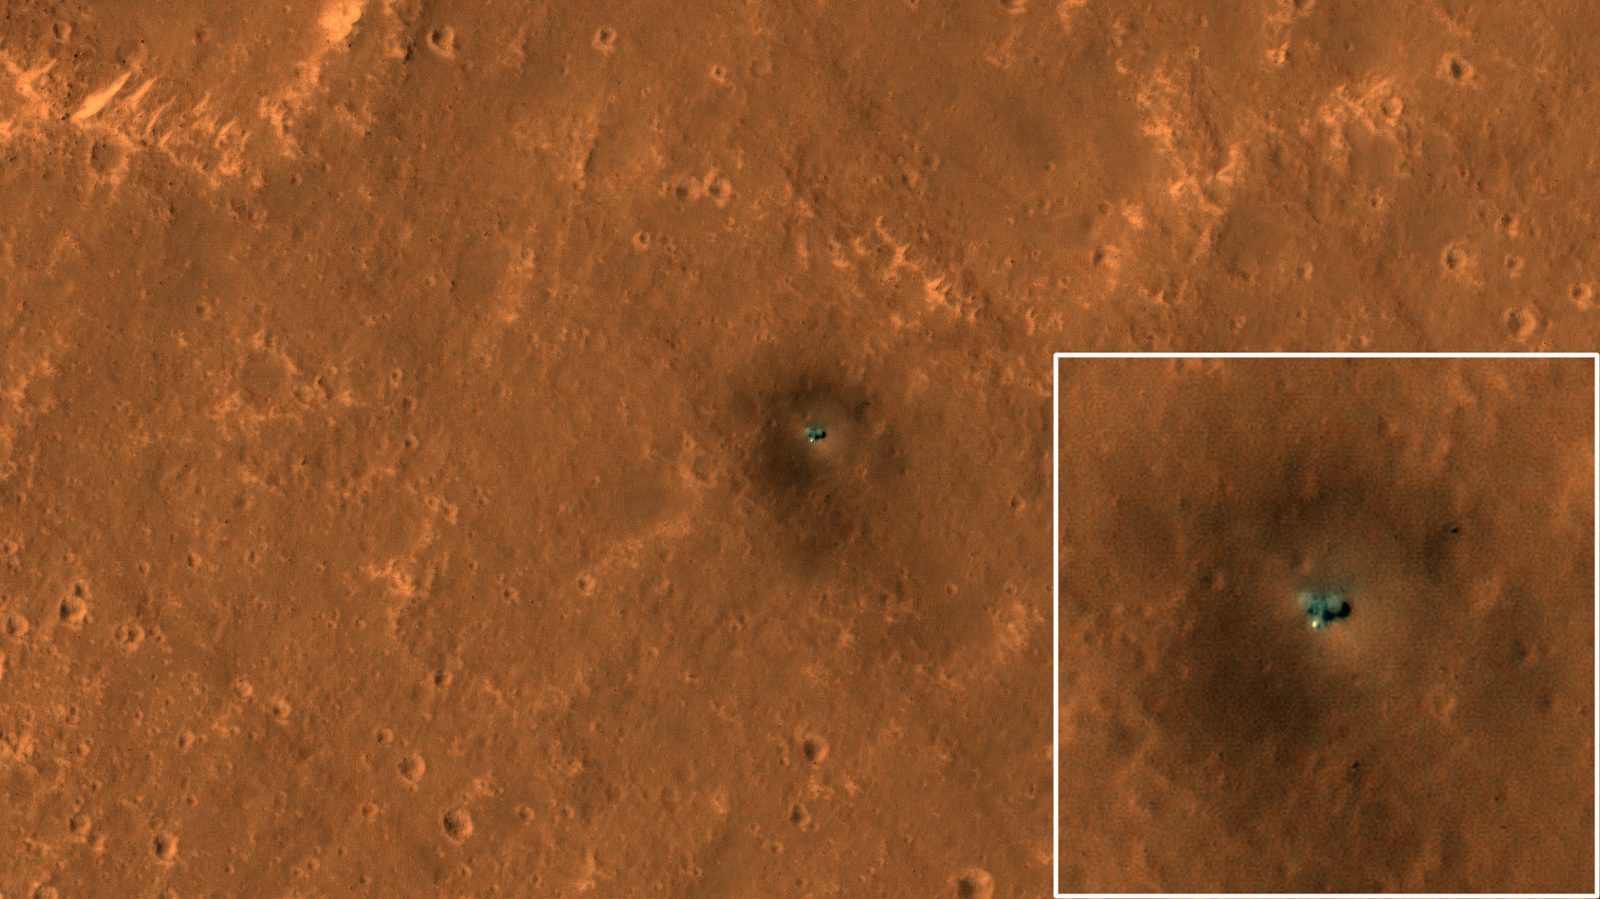 The HiRISE camera on NASA's Mars Reconnaissance Orbiter got its best view yet of the InSight lander on September 23, 2019